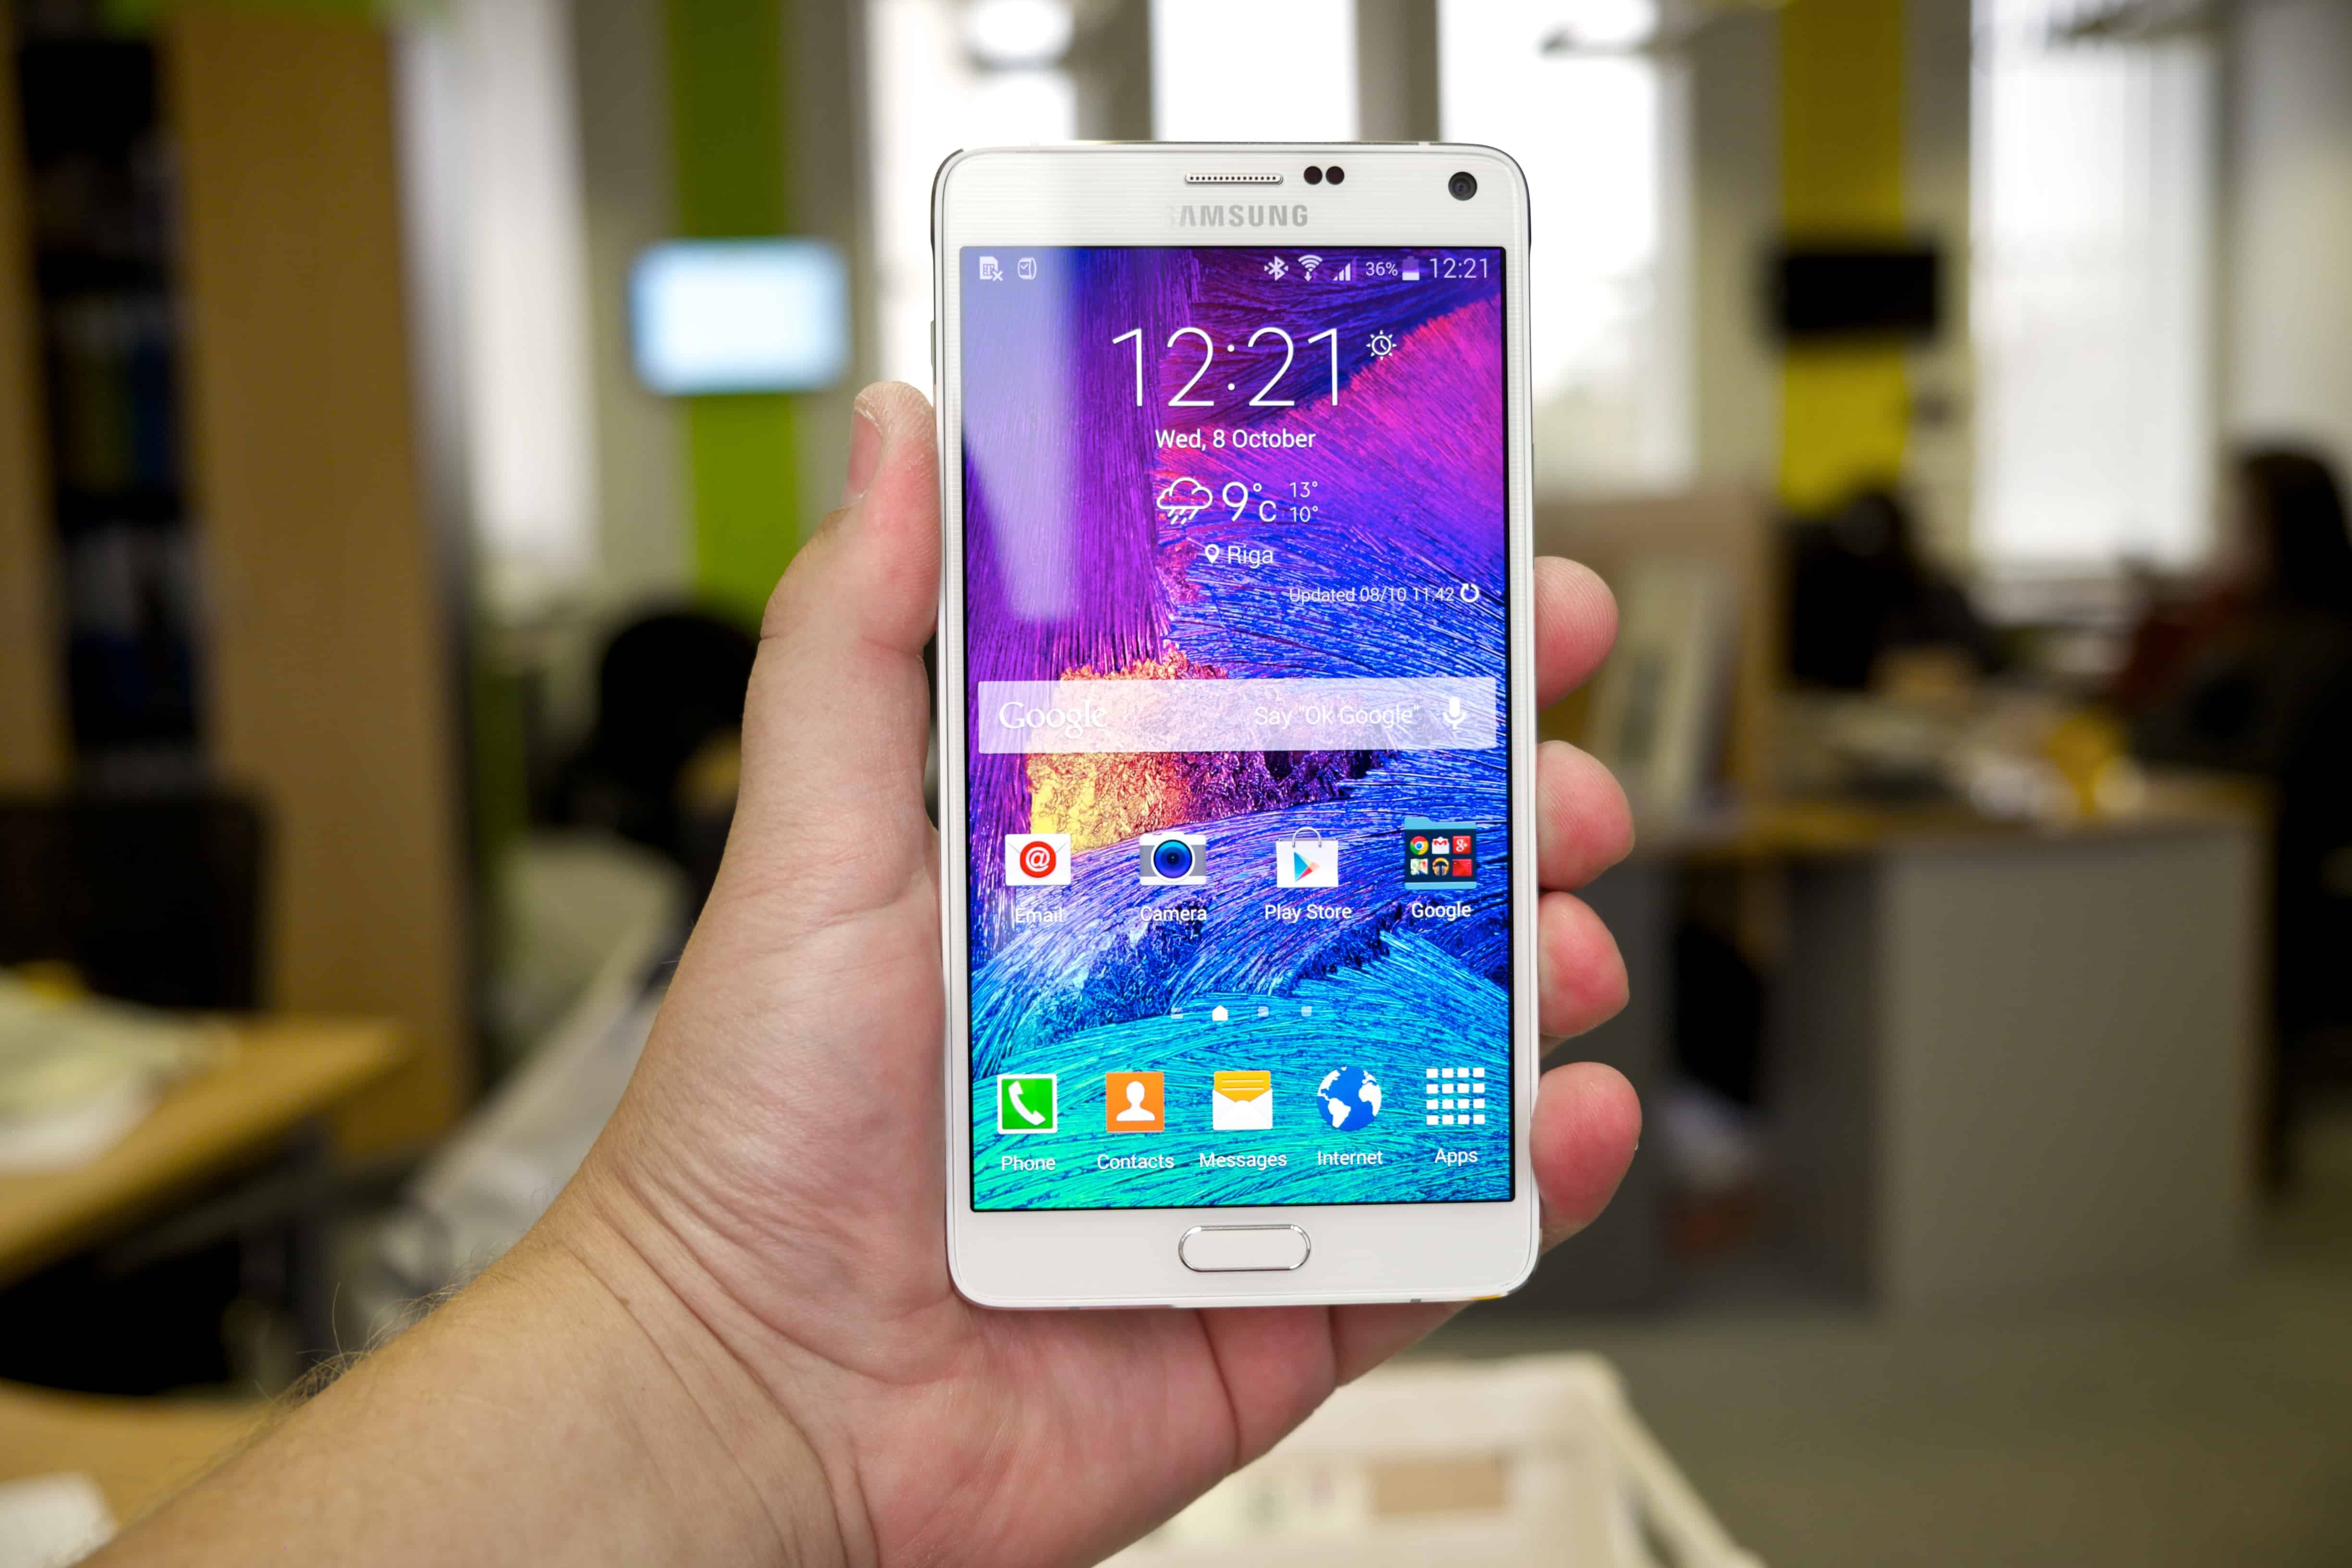 Remove Bloatware in Galaxy Note 4 without Rooting